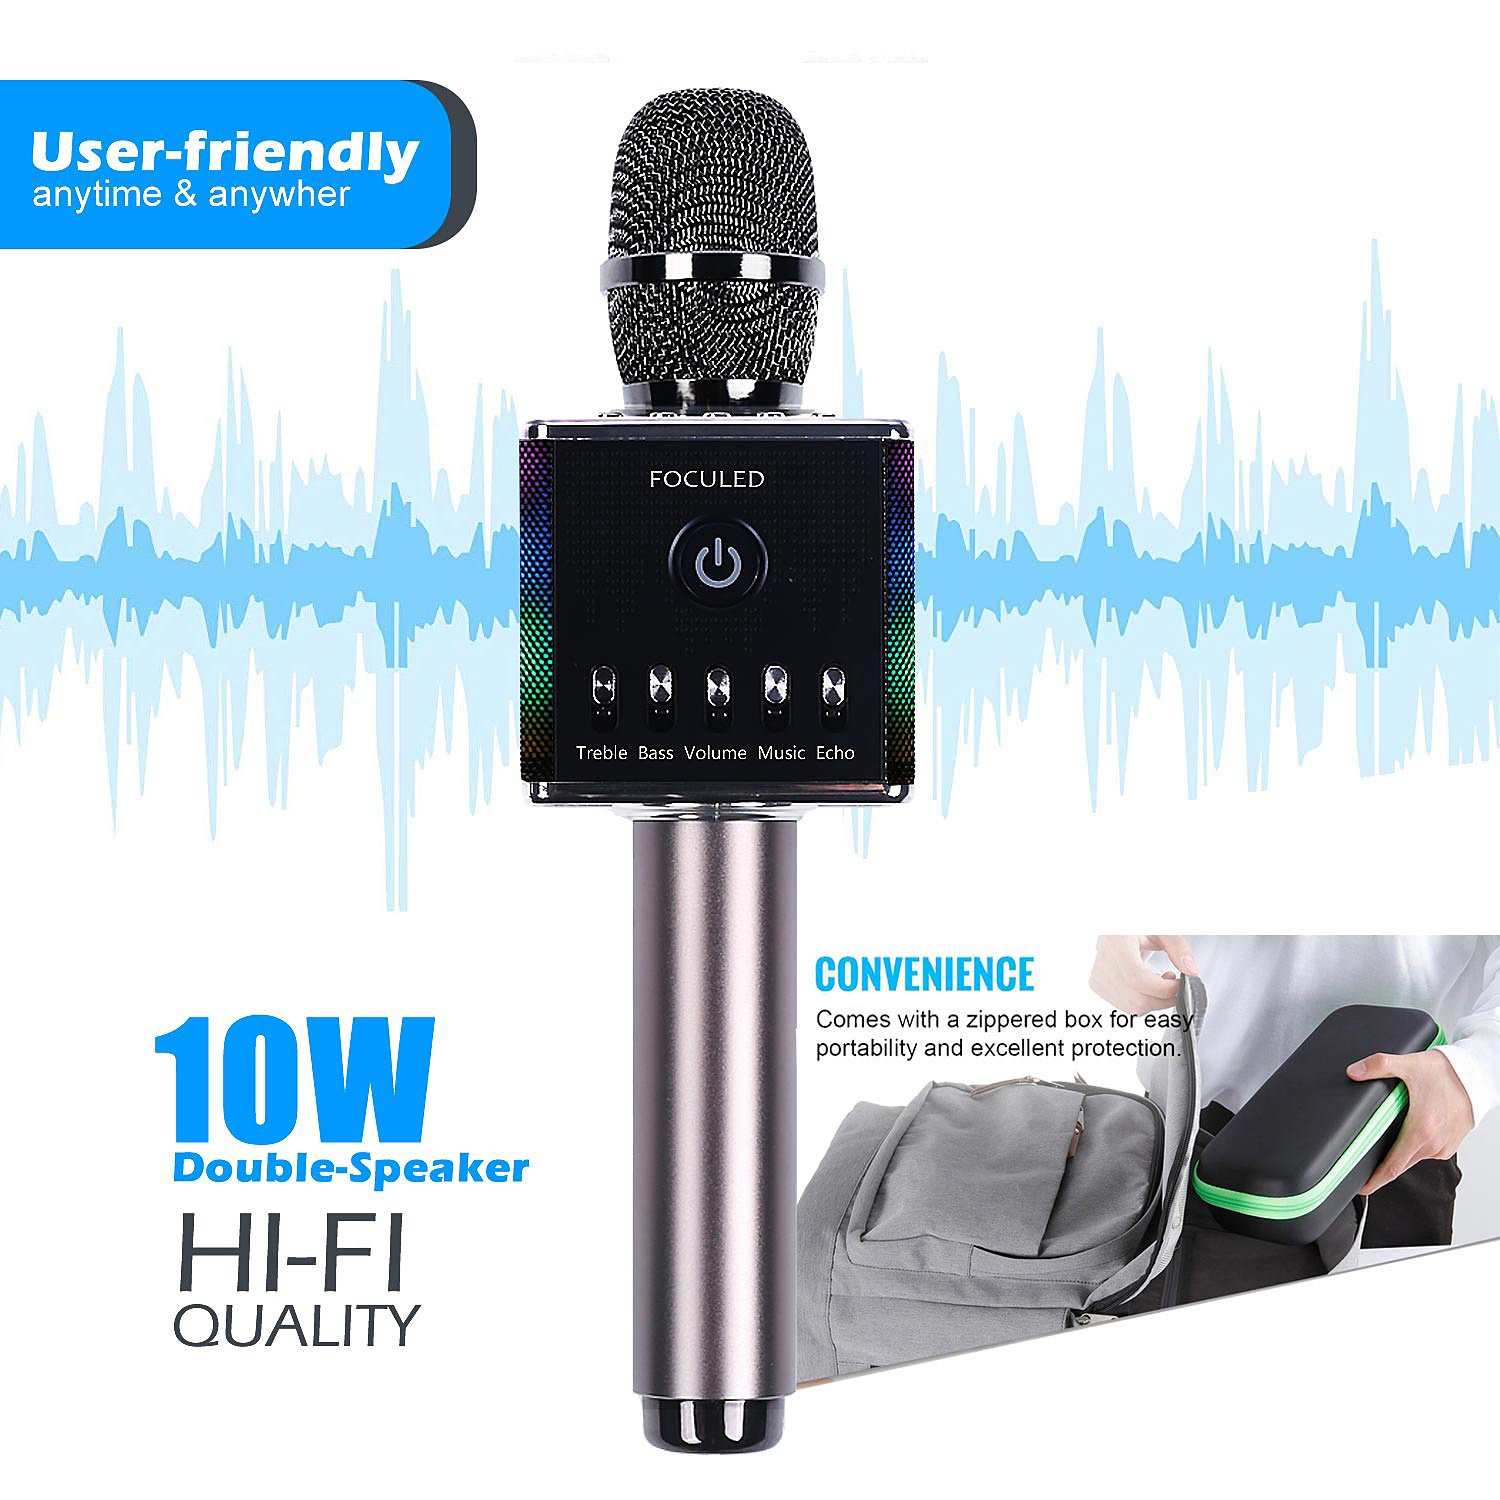 Portable Wireless Bluetooth Karaoke Microphone with LED lights, Built-in HIFI Dual-Speaker 10W and 2600mAH battery capacity, Handheld karaoke Mic Speaker Machine for Home KTV Birthday Party by FOCULED (Image #2)